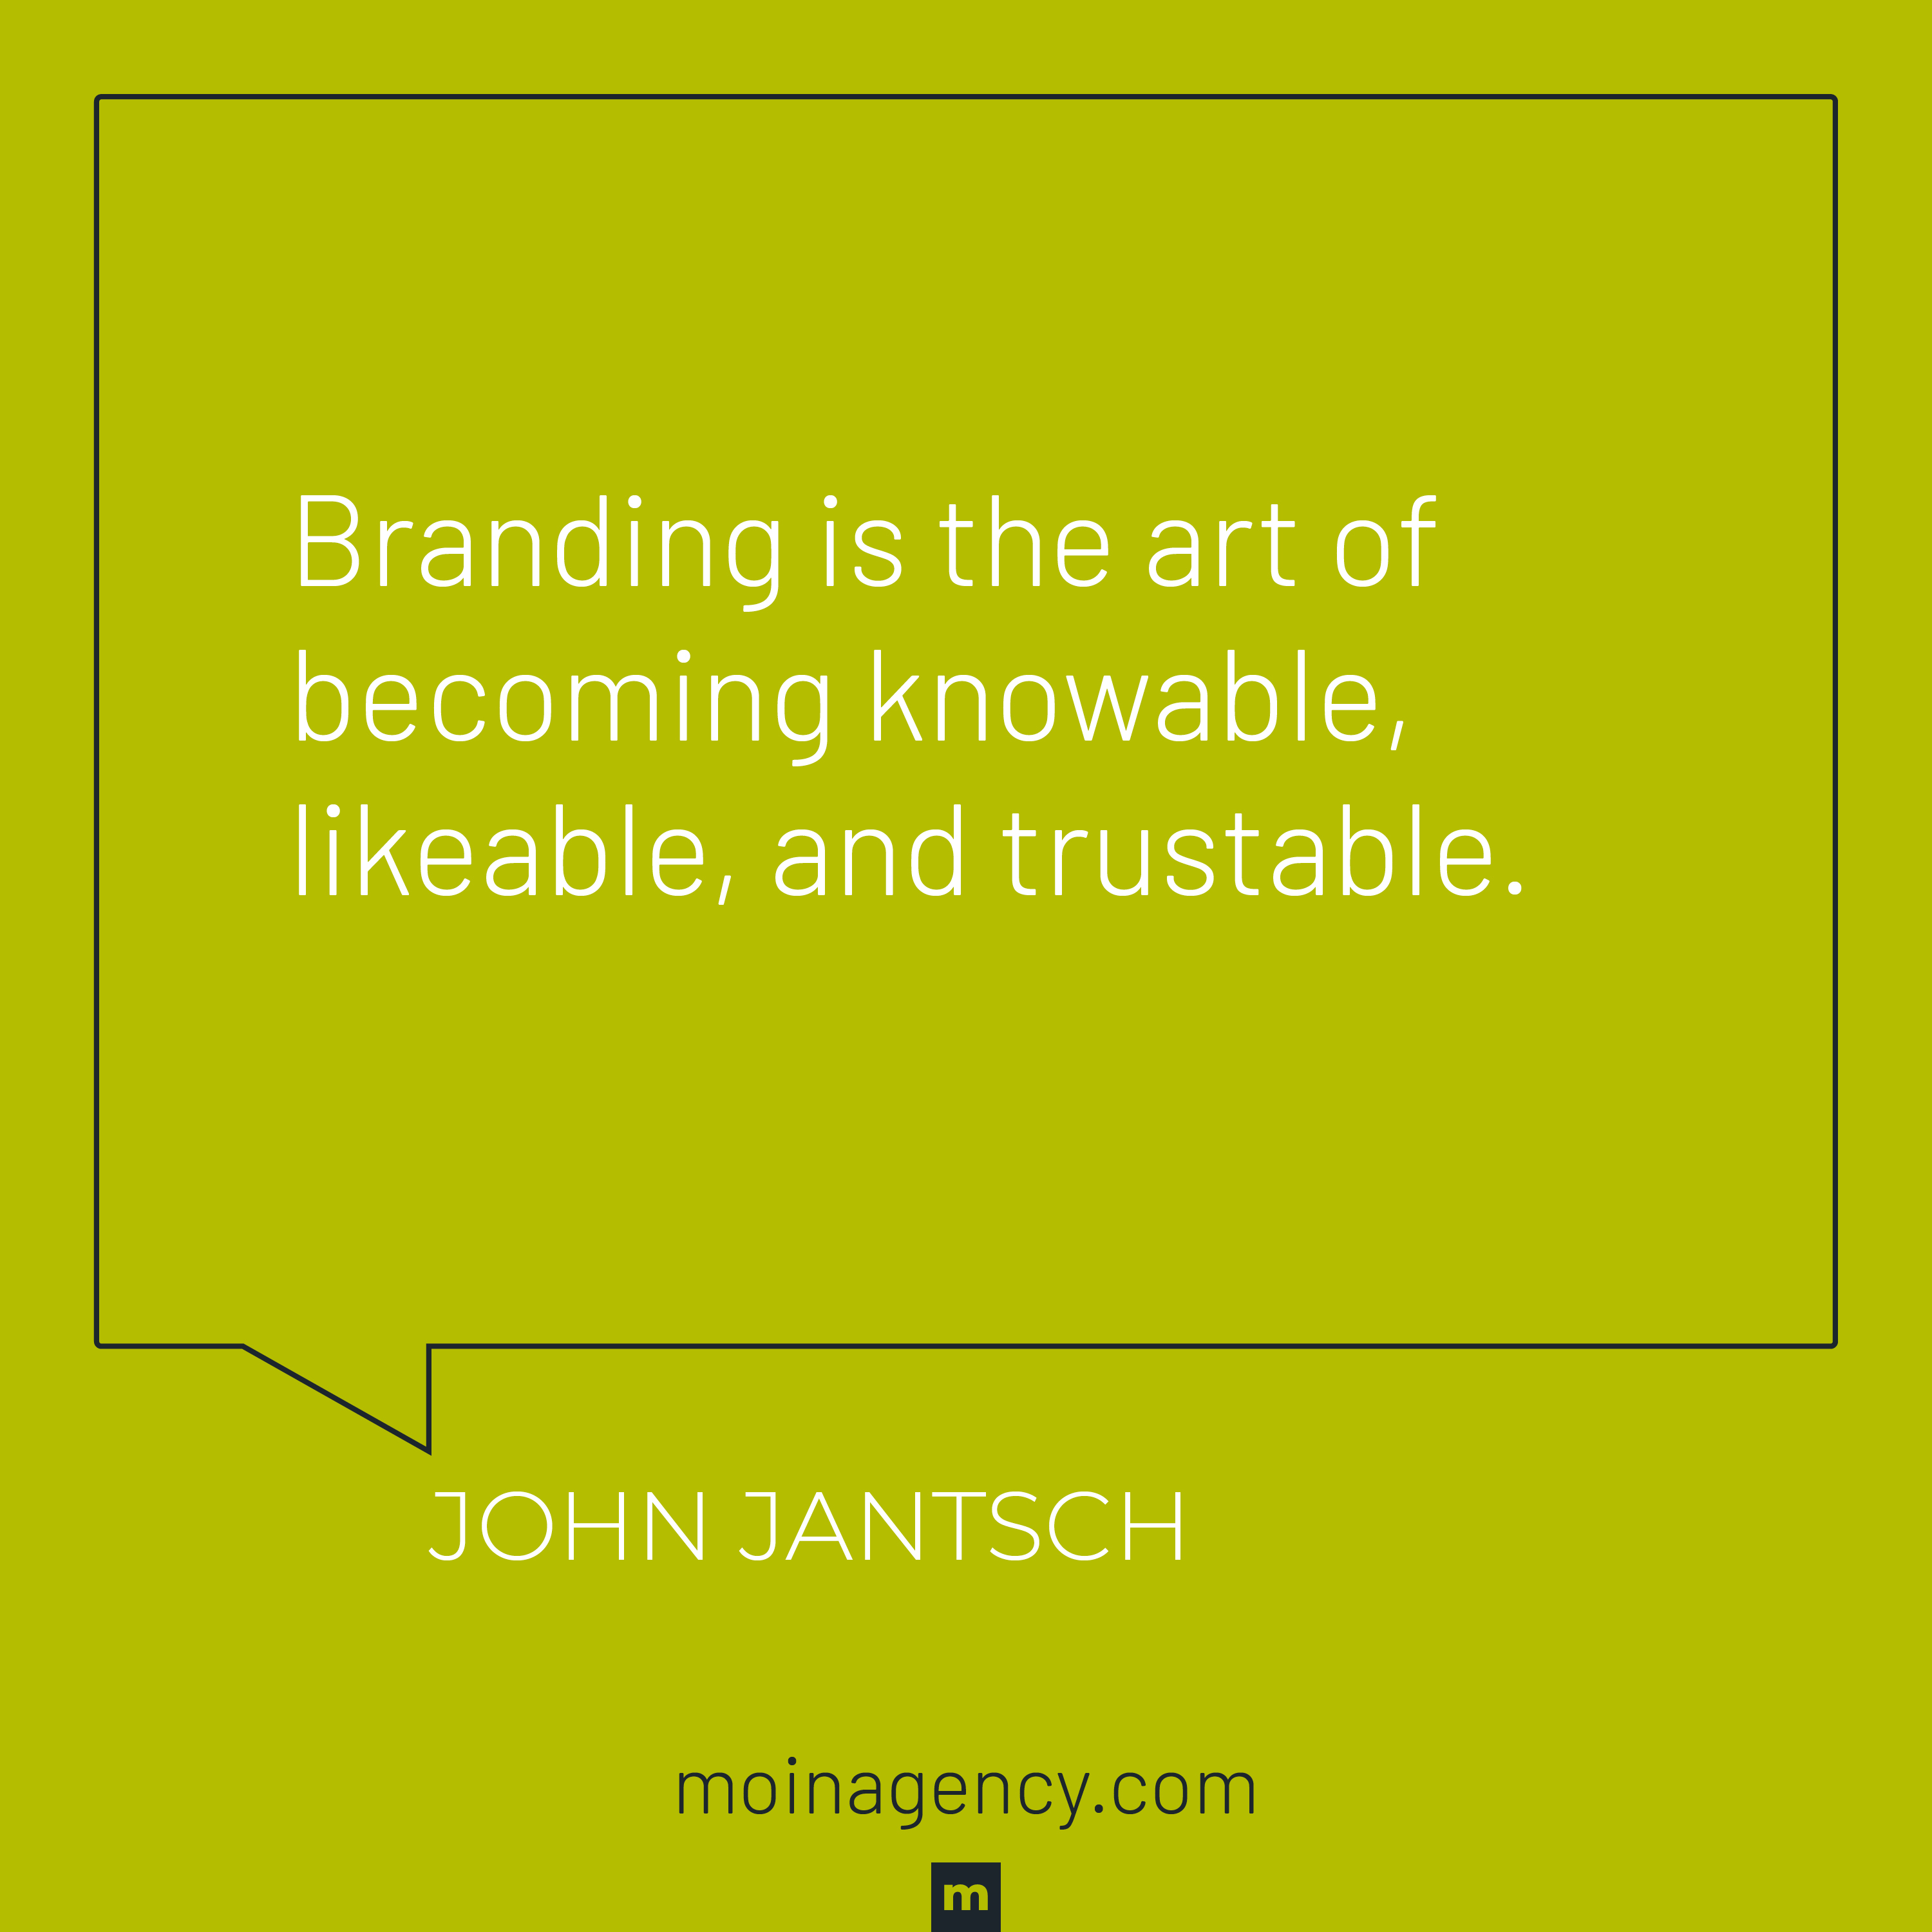 Branding is the art of becoming knowable, likeable, and trustable.